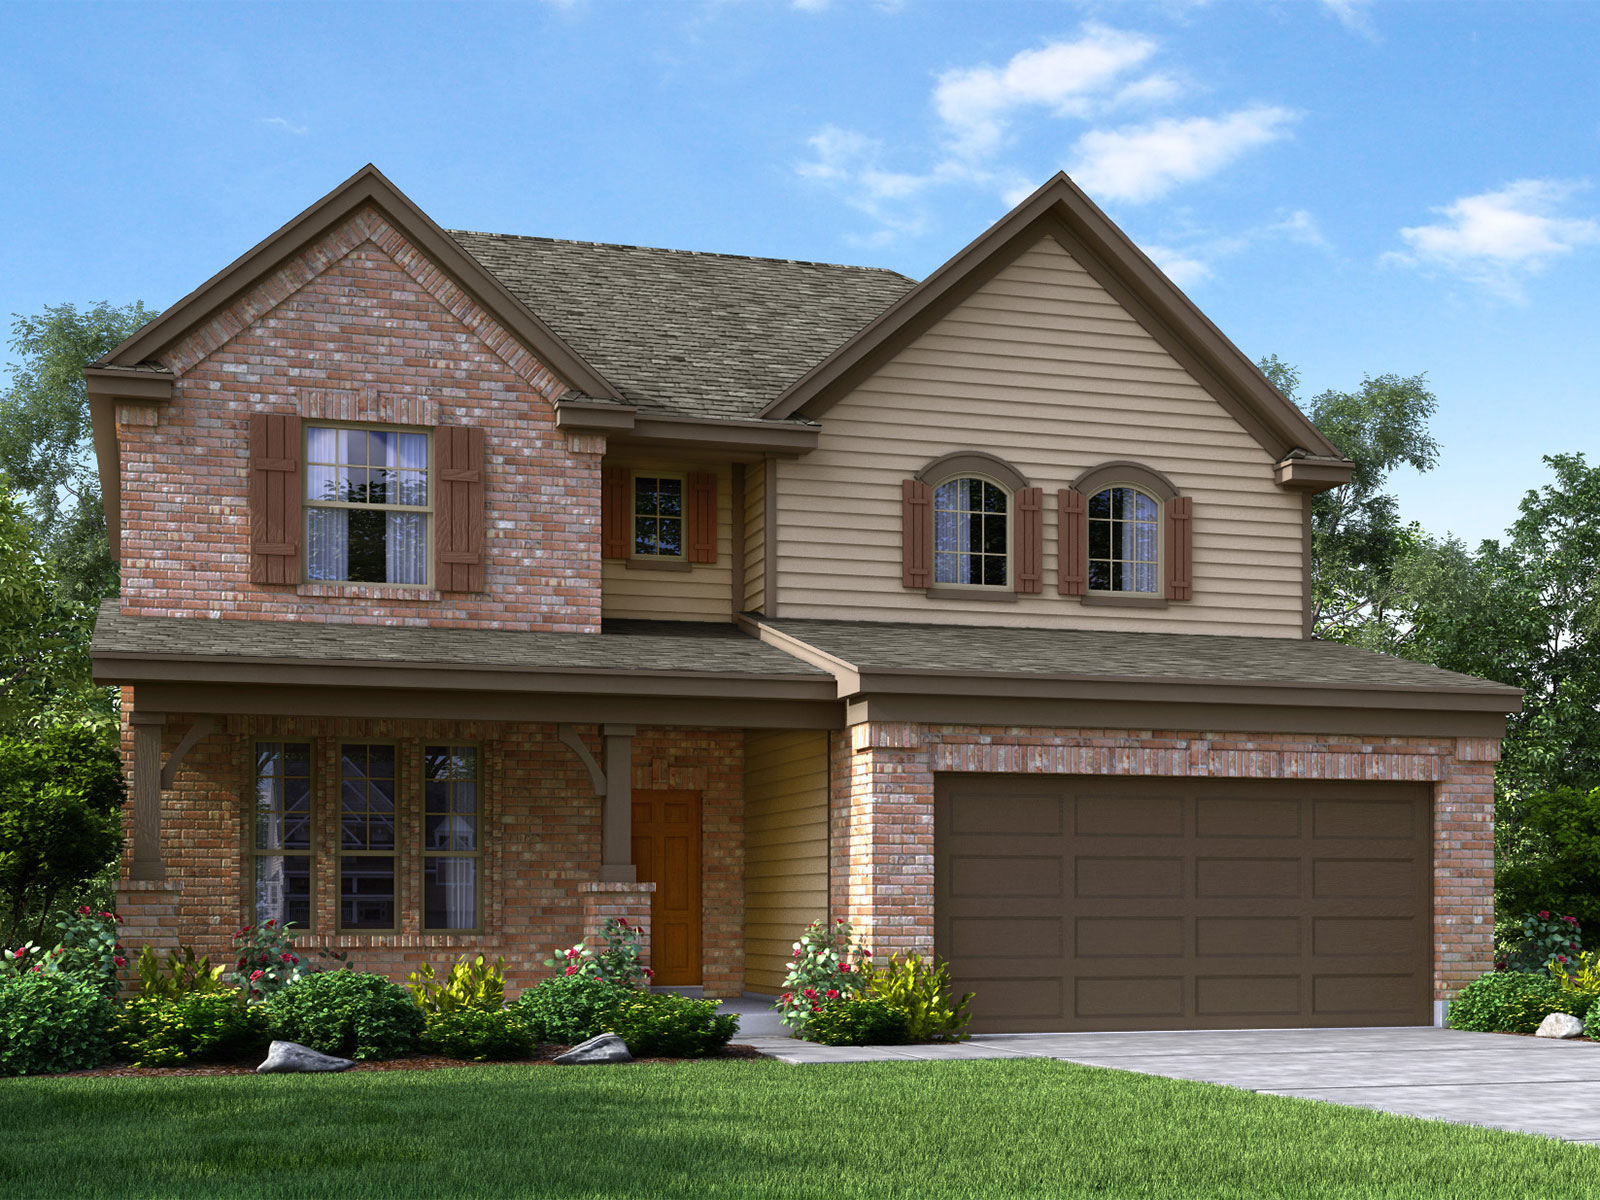 The Triton 4k91 Model 4br 3ba Homes For Sale In